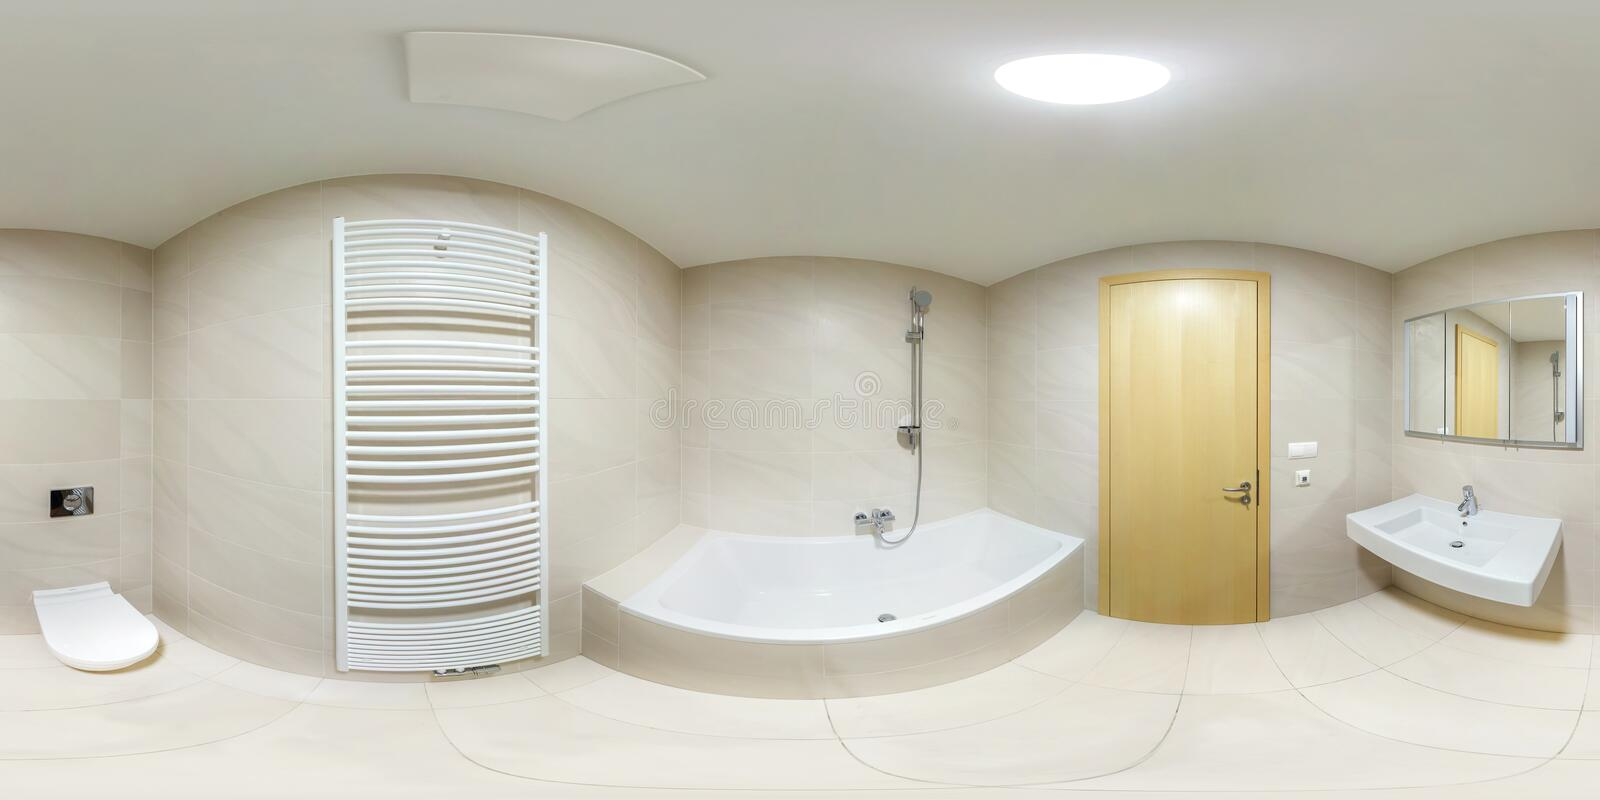 Full seamlees panorama 360 degrees angle view in modern white empty restroom bathroom in equirectangular spherical projection. VR. Content stock photography